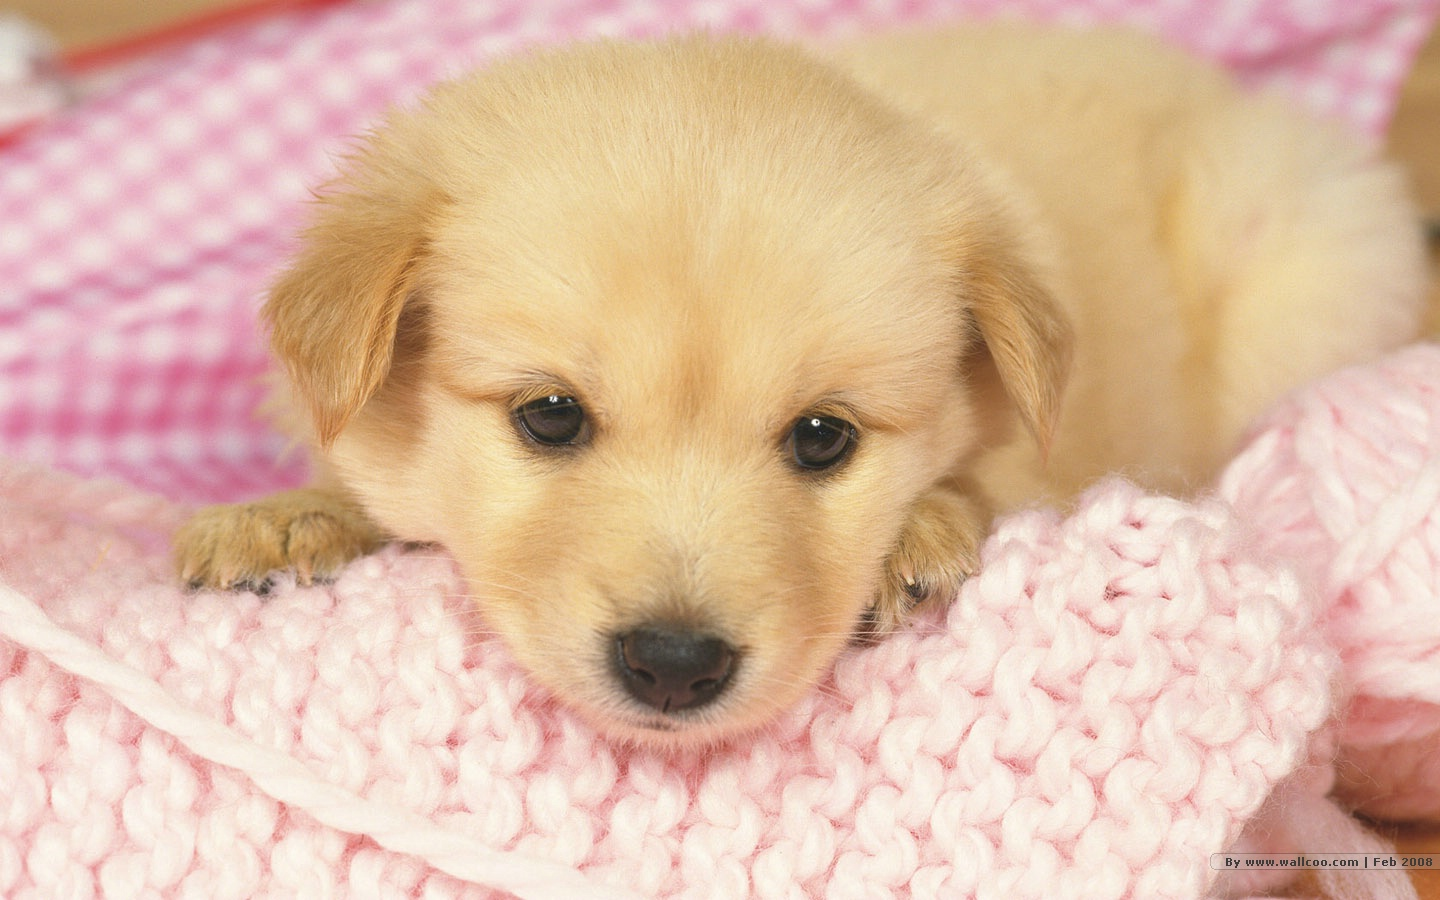 Puppy wallpapers Lovely Puppies Photos 1440900 NO52 Wallpaper 1440x900